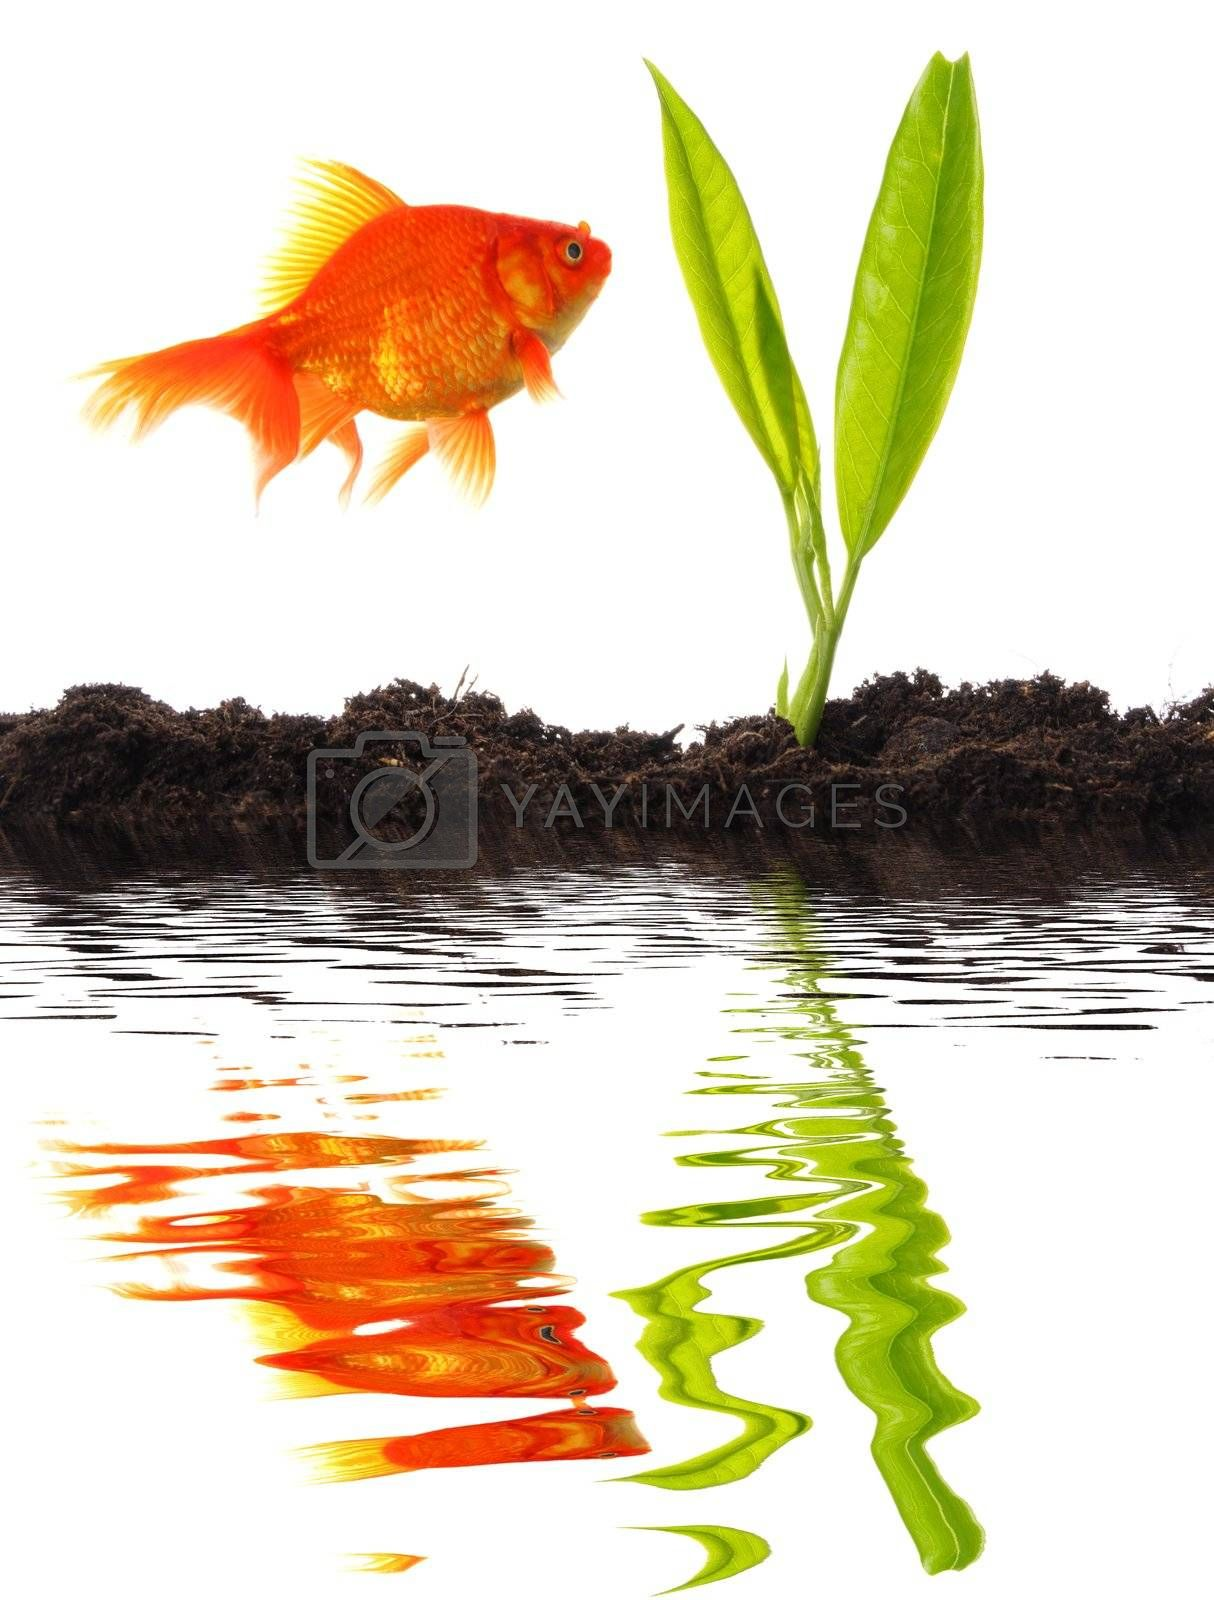 goldfish and young plant showing growth or nature concept